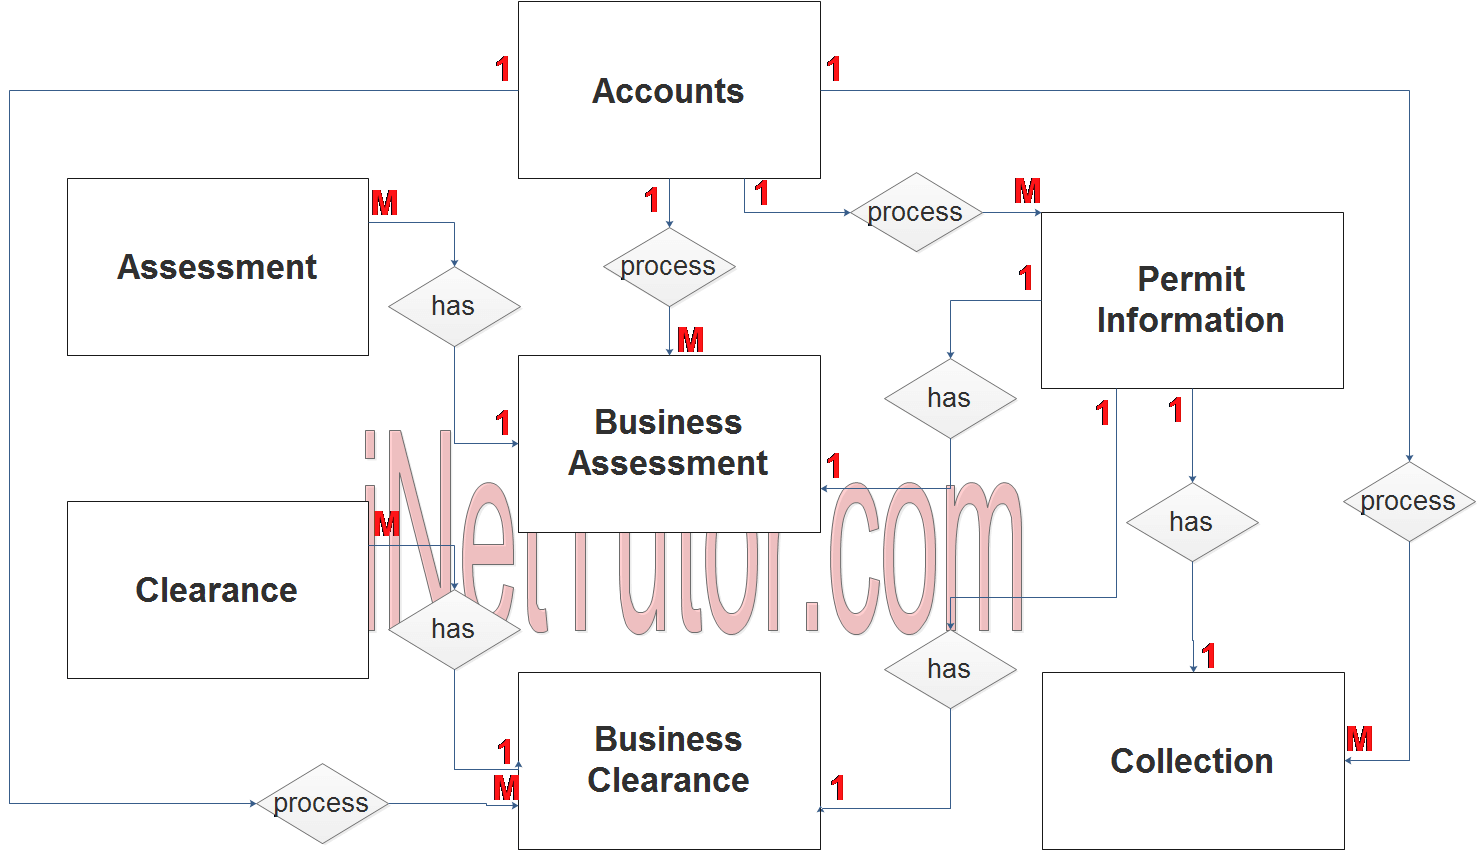 Business Permit System ER Diagram - Step 2 Table Relationship